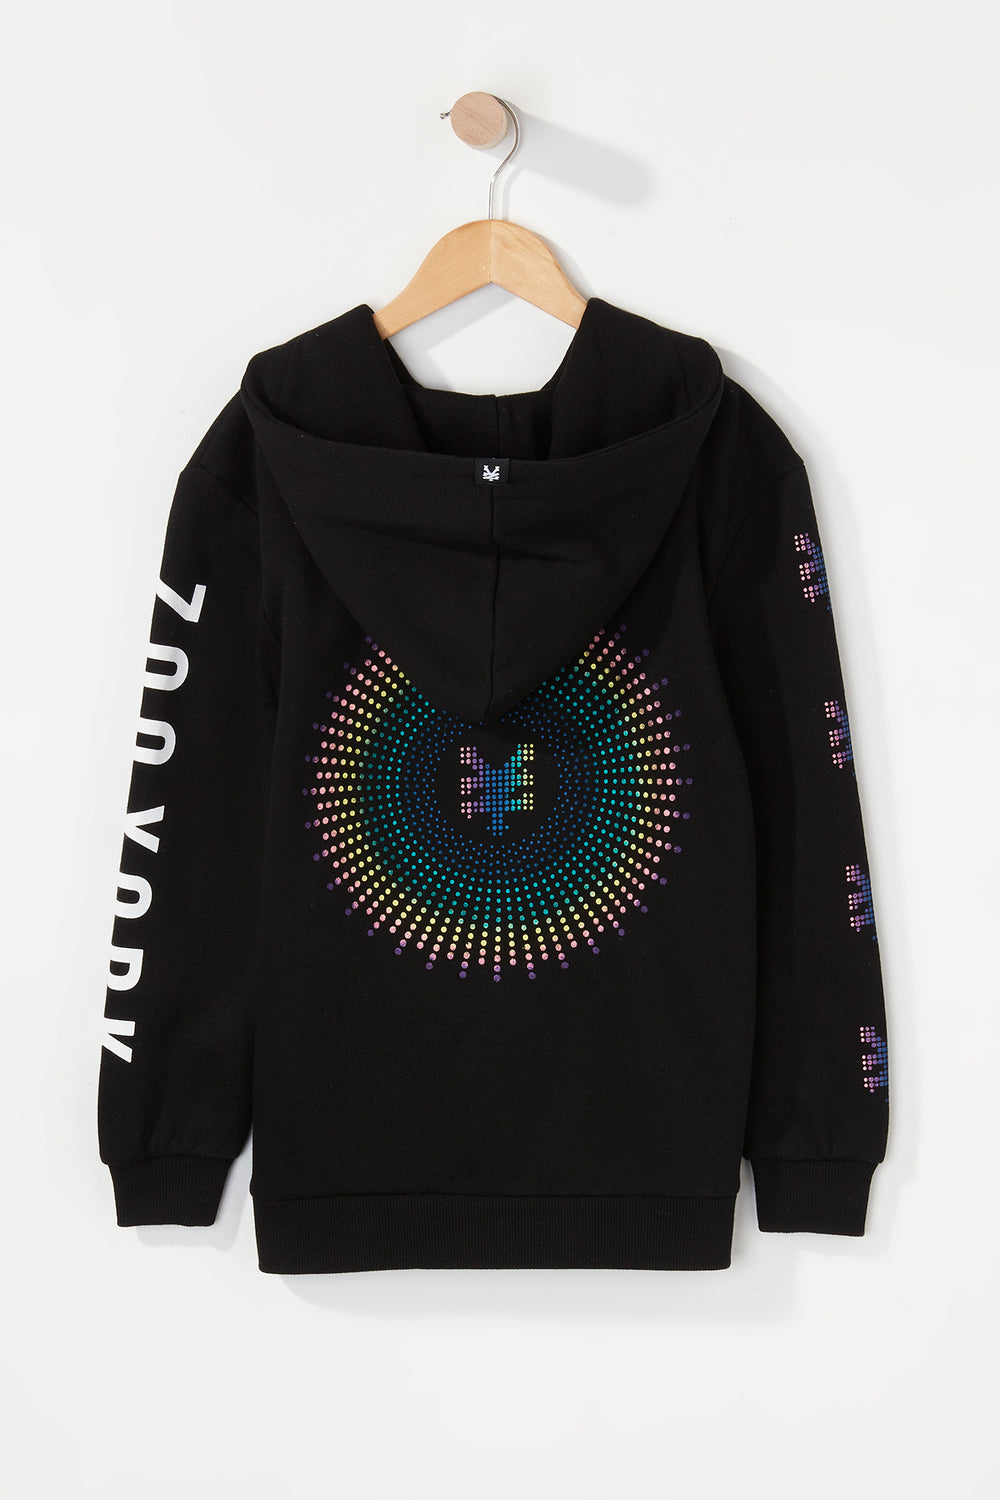 Zoo York Boys Rainbow Dots Hoodie Black